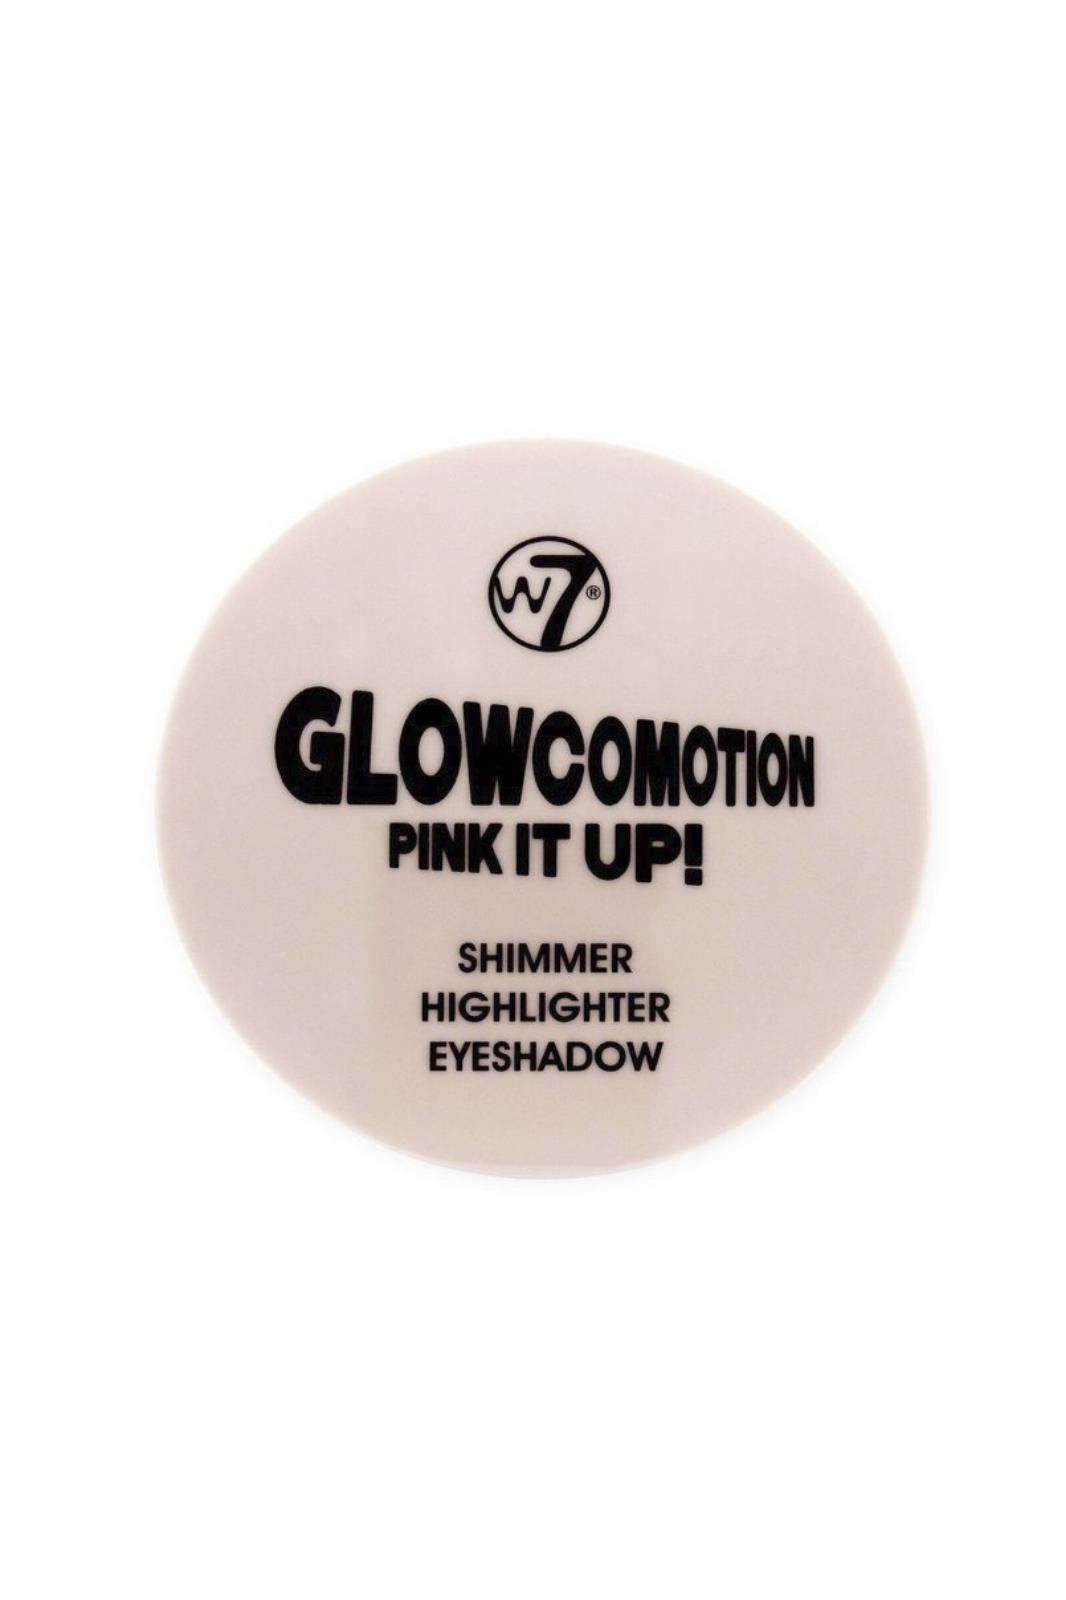 iluminador w7 glowcomotion 5,39€